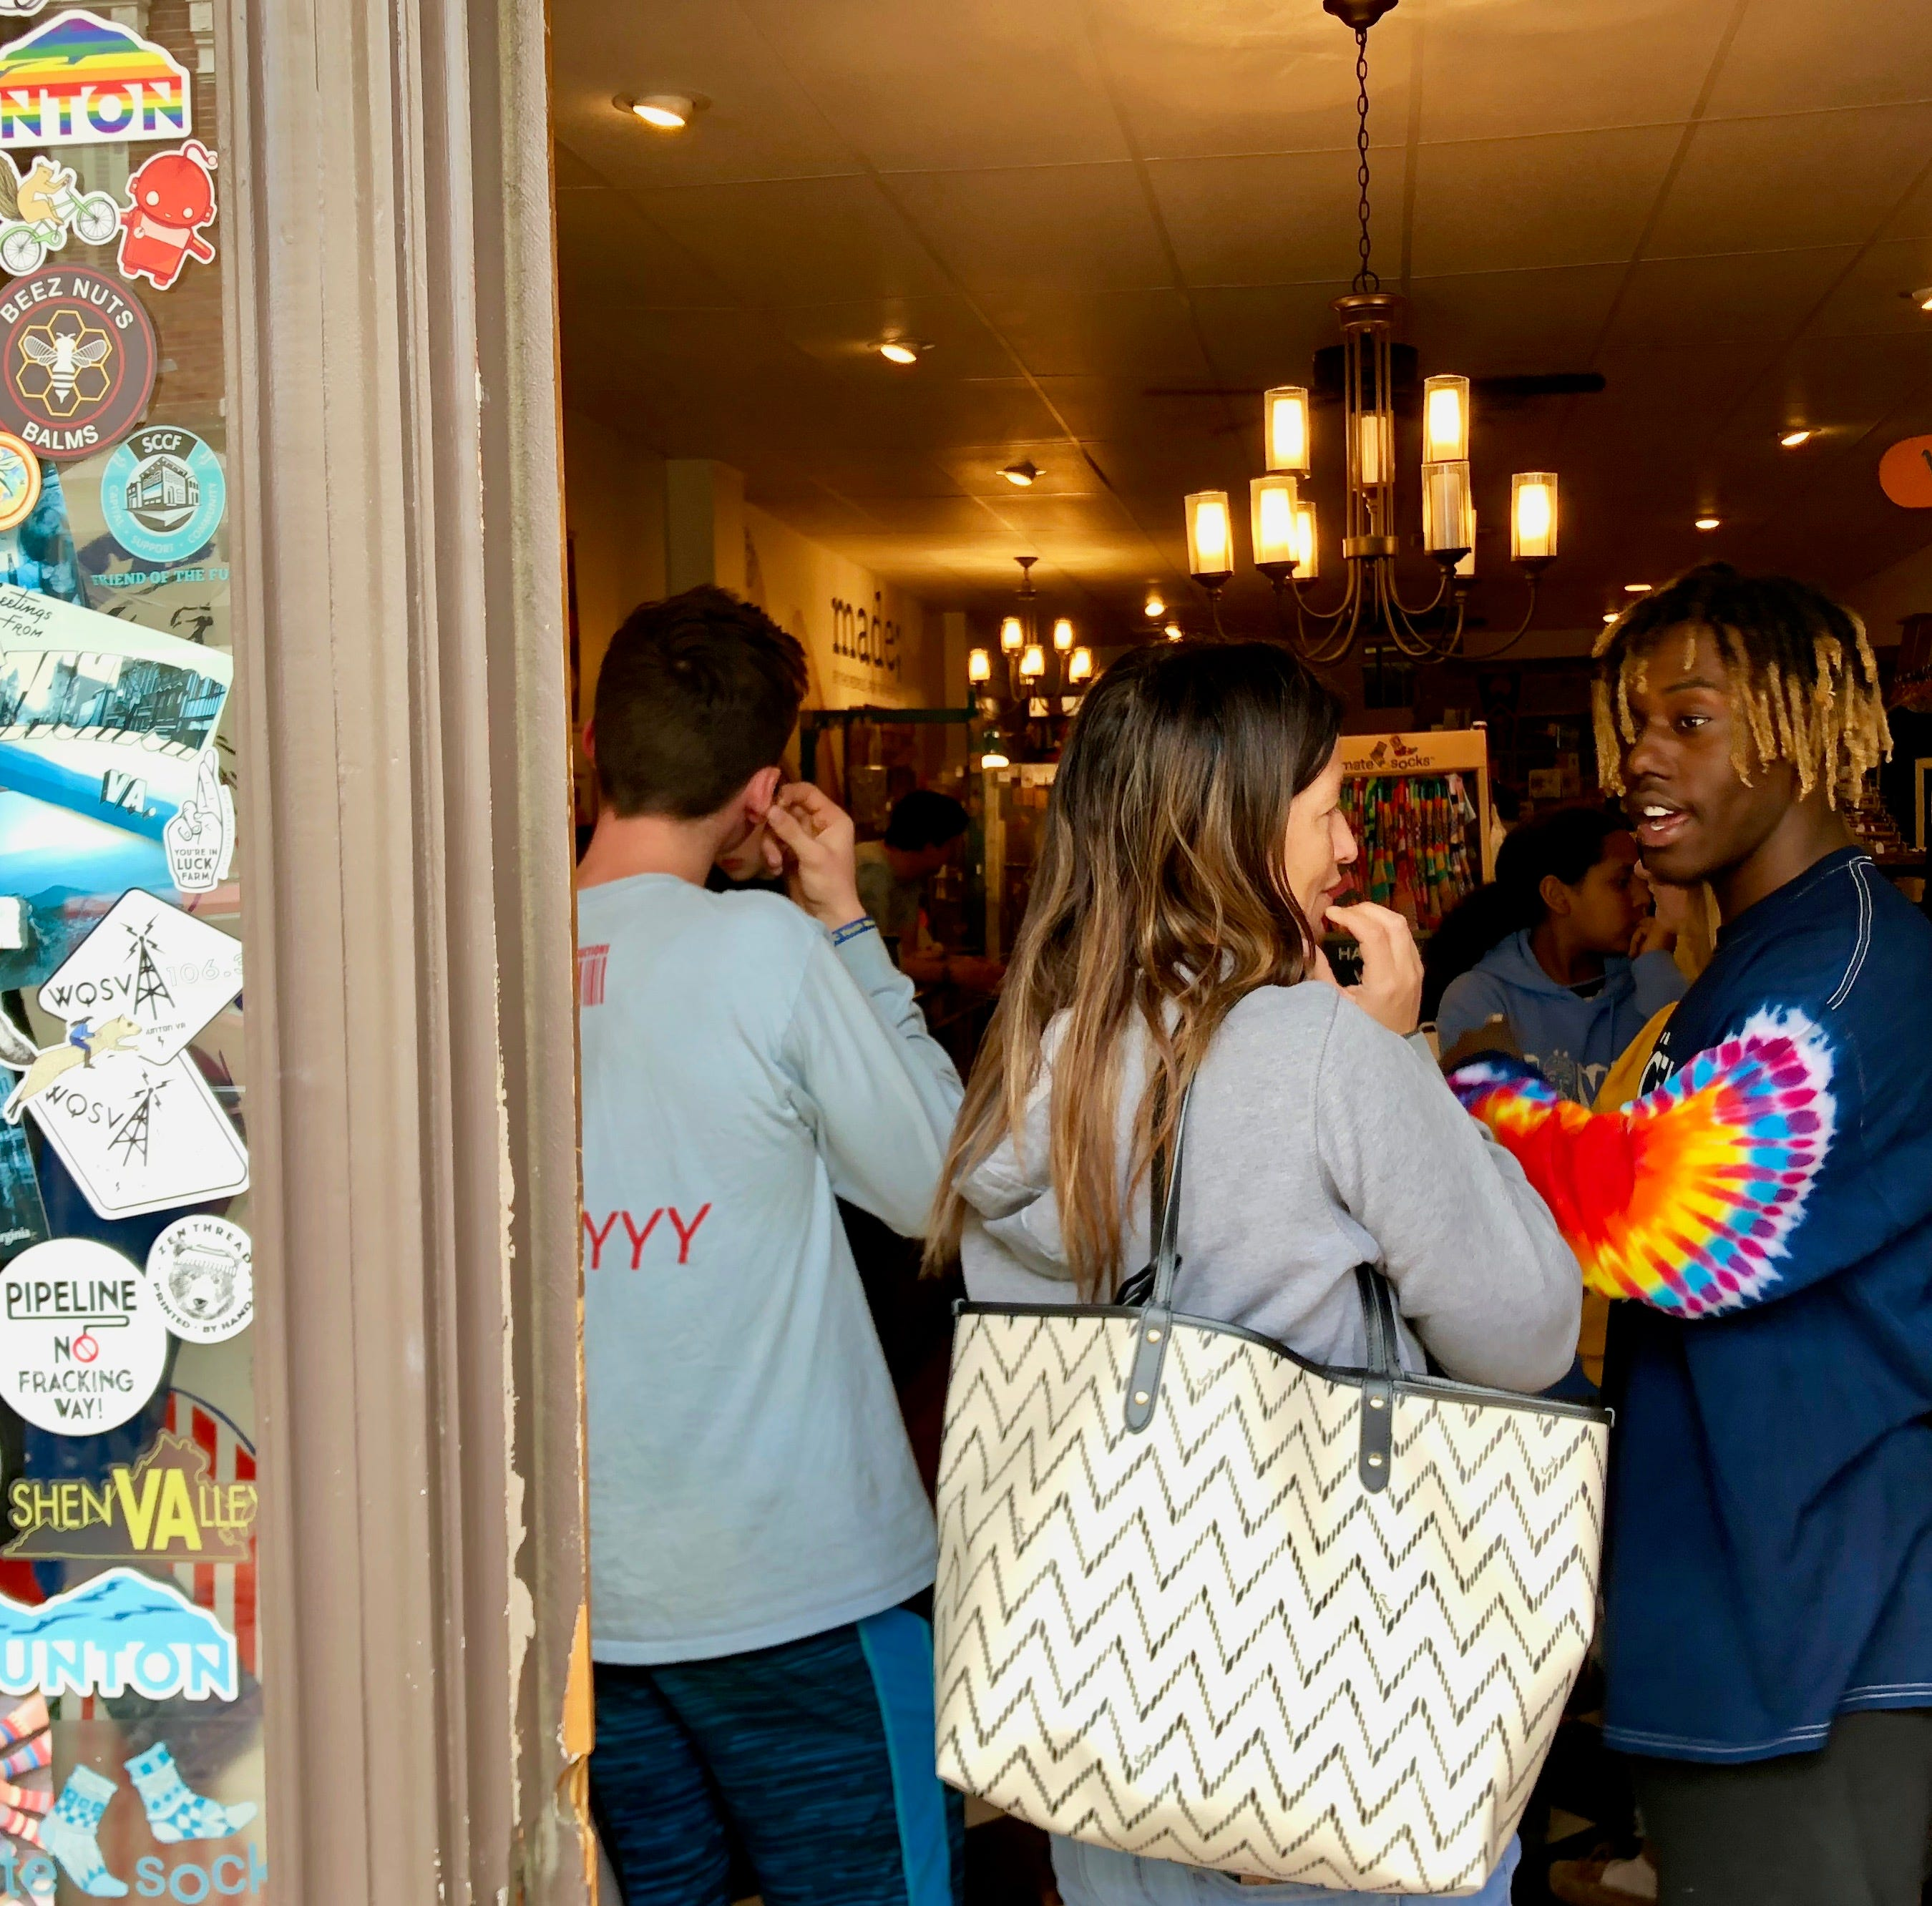 Teen spreading smiles and style in downtown Staunton